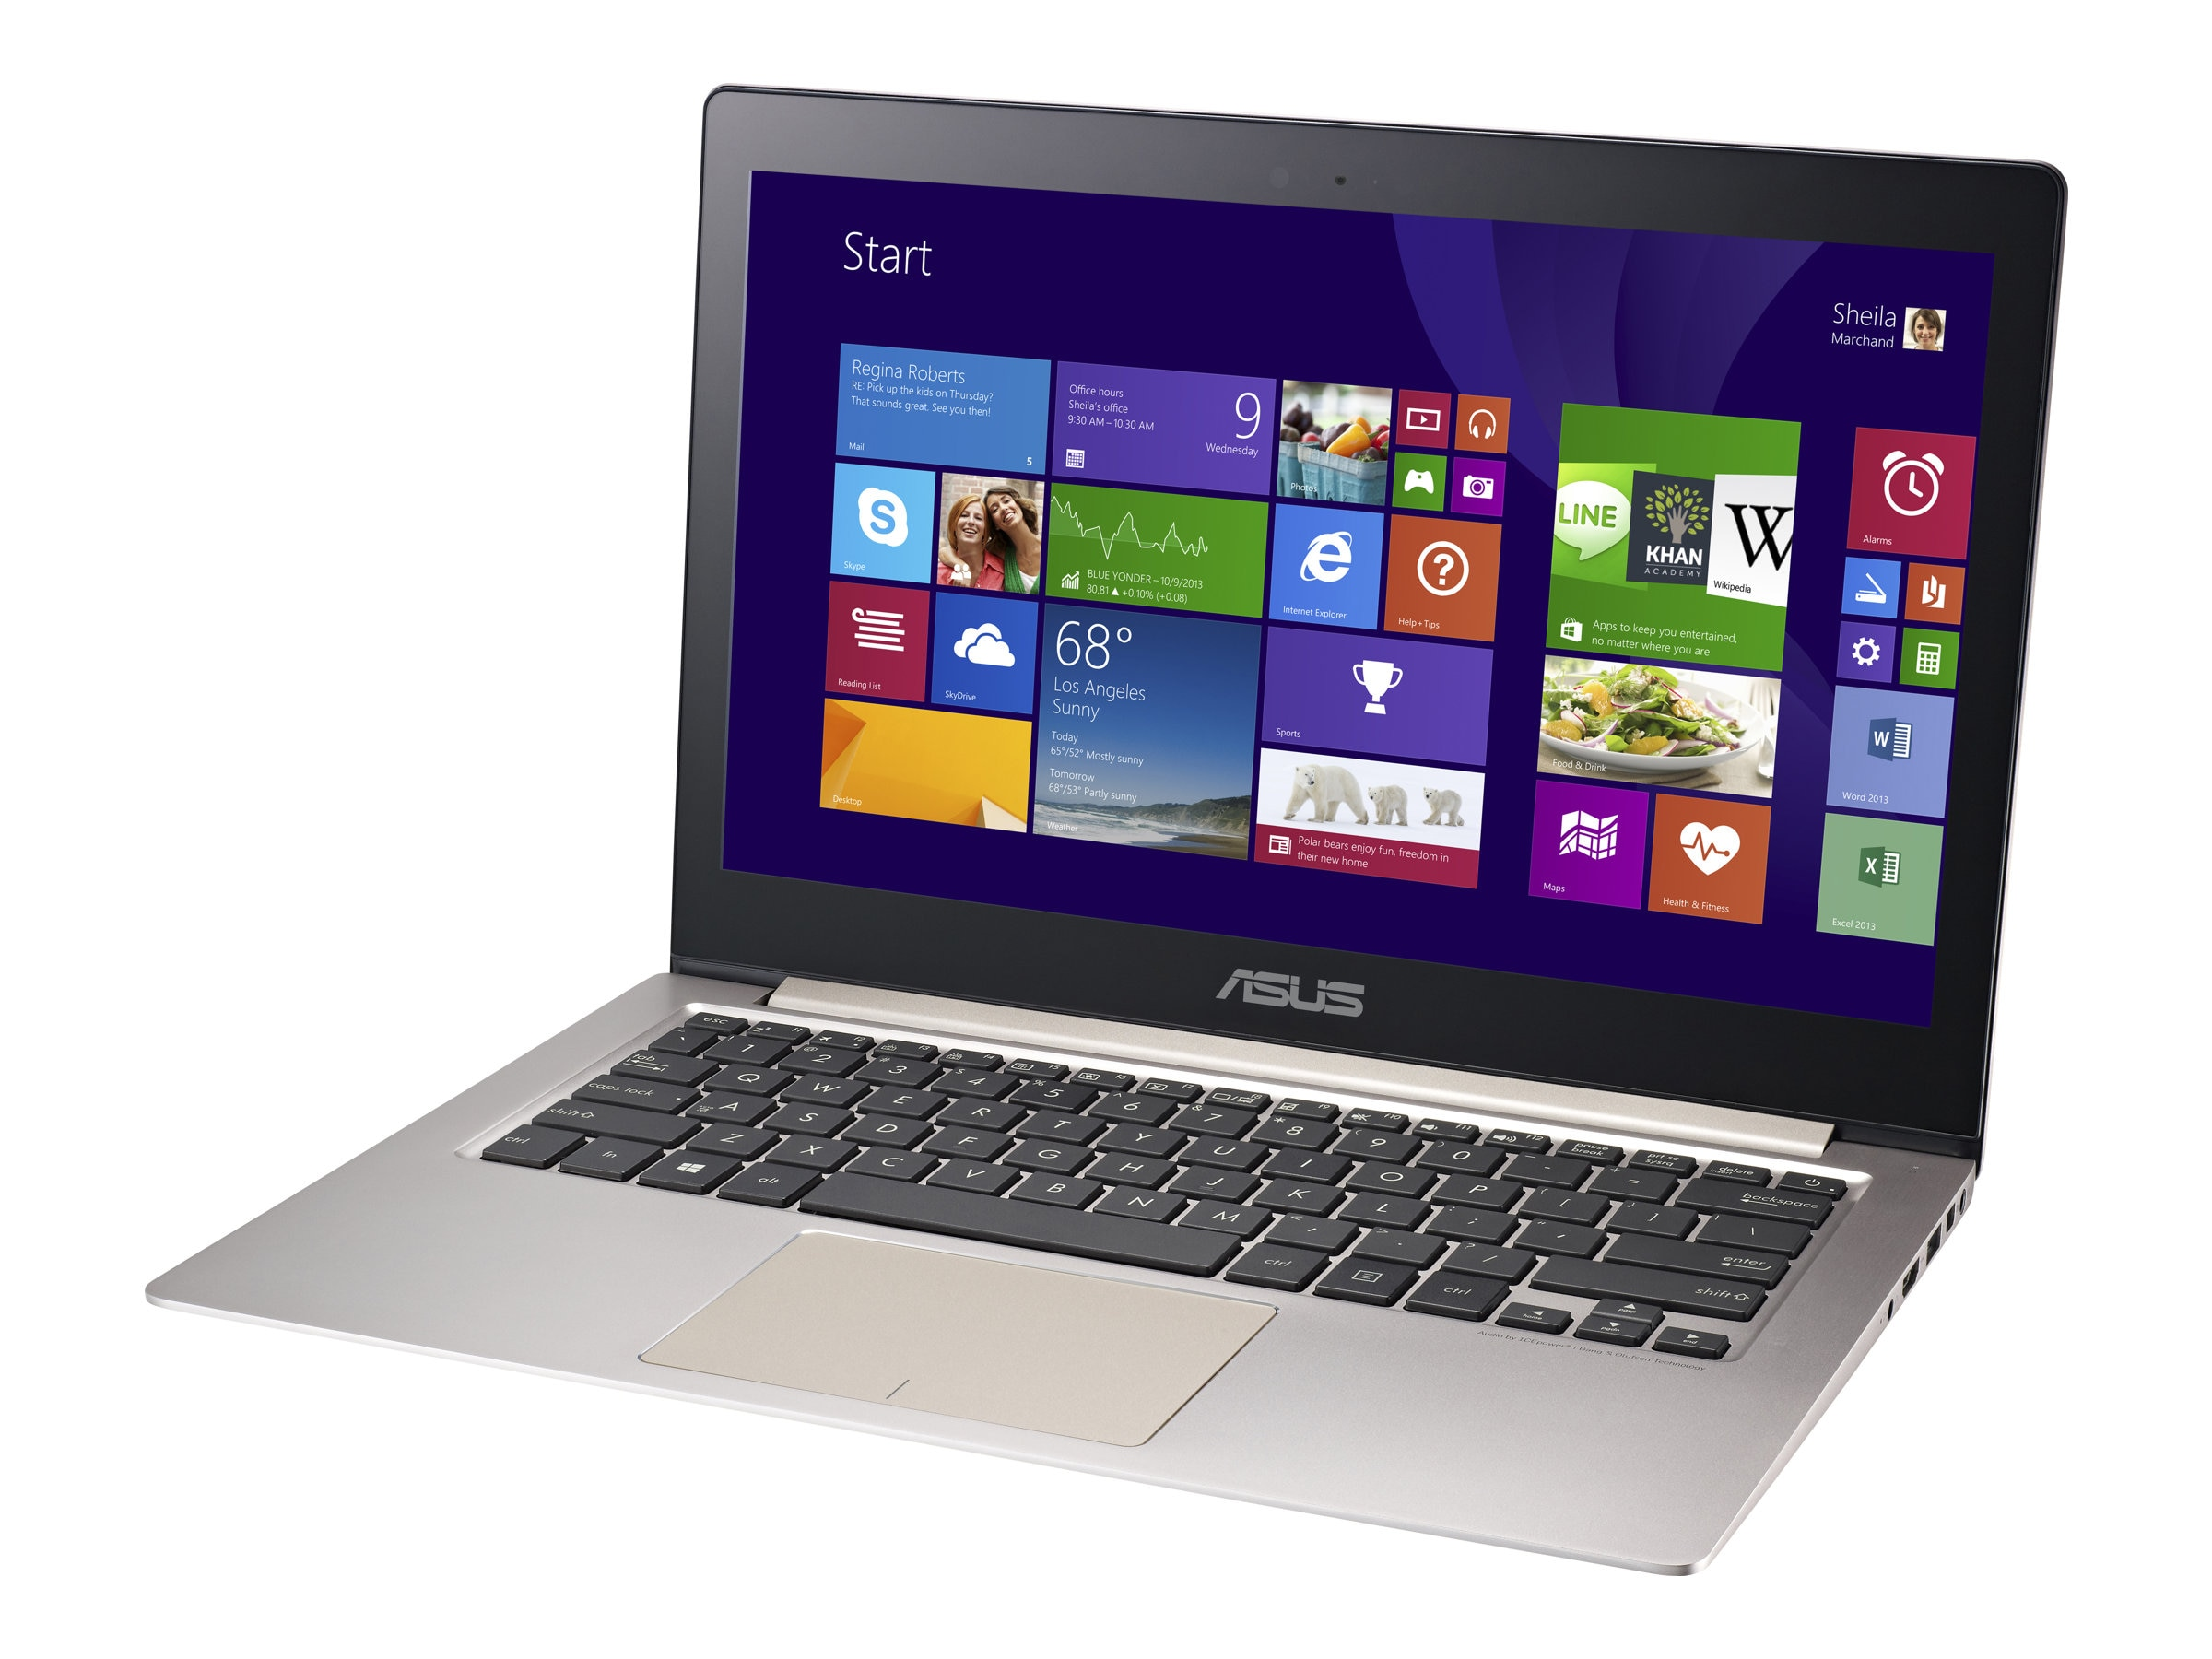 Asus UX303UB Core i7 2.5GHz 12GB 512GB 13.3 Touch W10-64, UX303UB-DH74T, 30578436, Notebooks